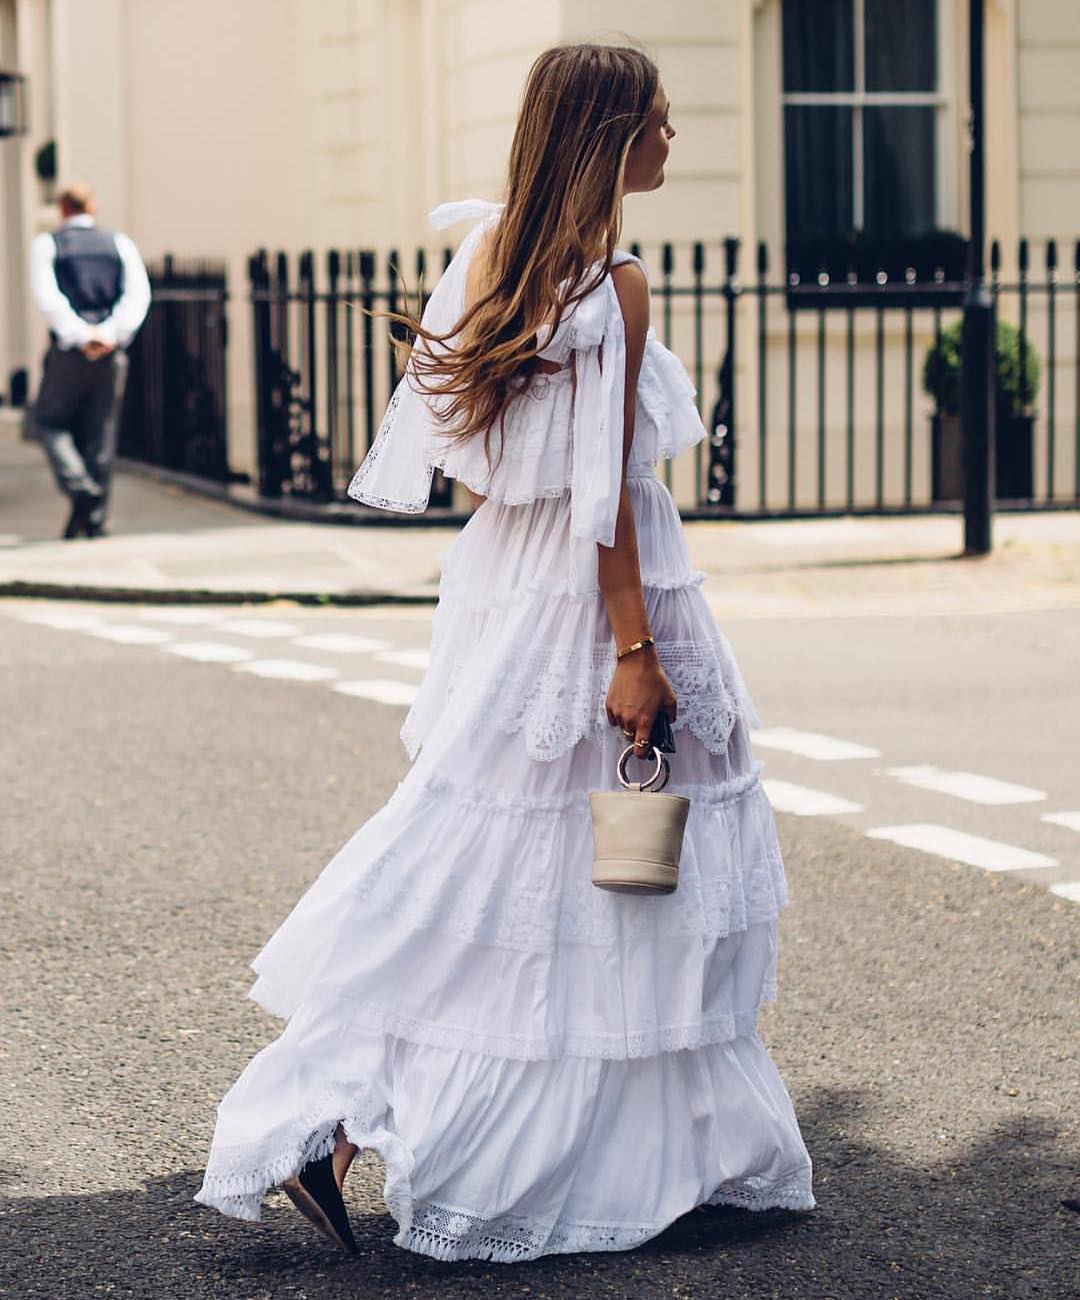 Sleeveless White Ruffled Maxi Dress With Crochet Details For Summer 2019